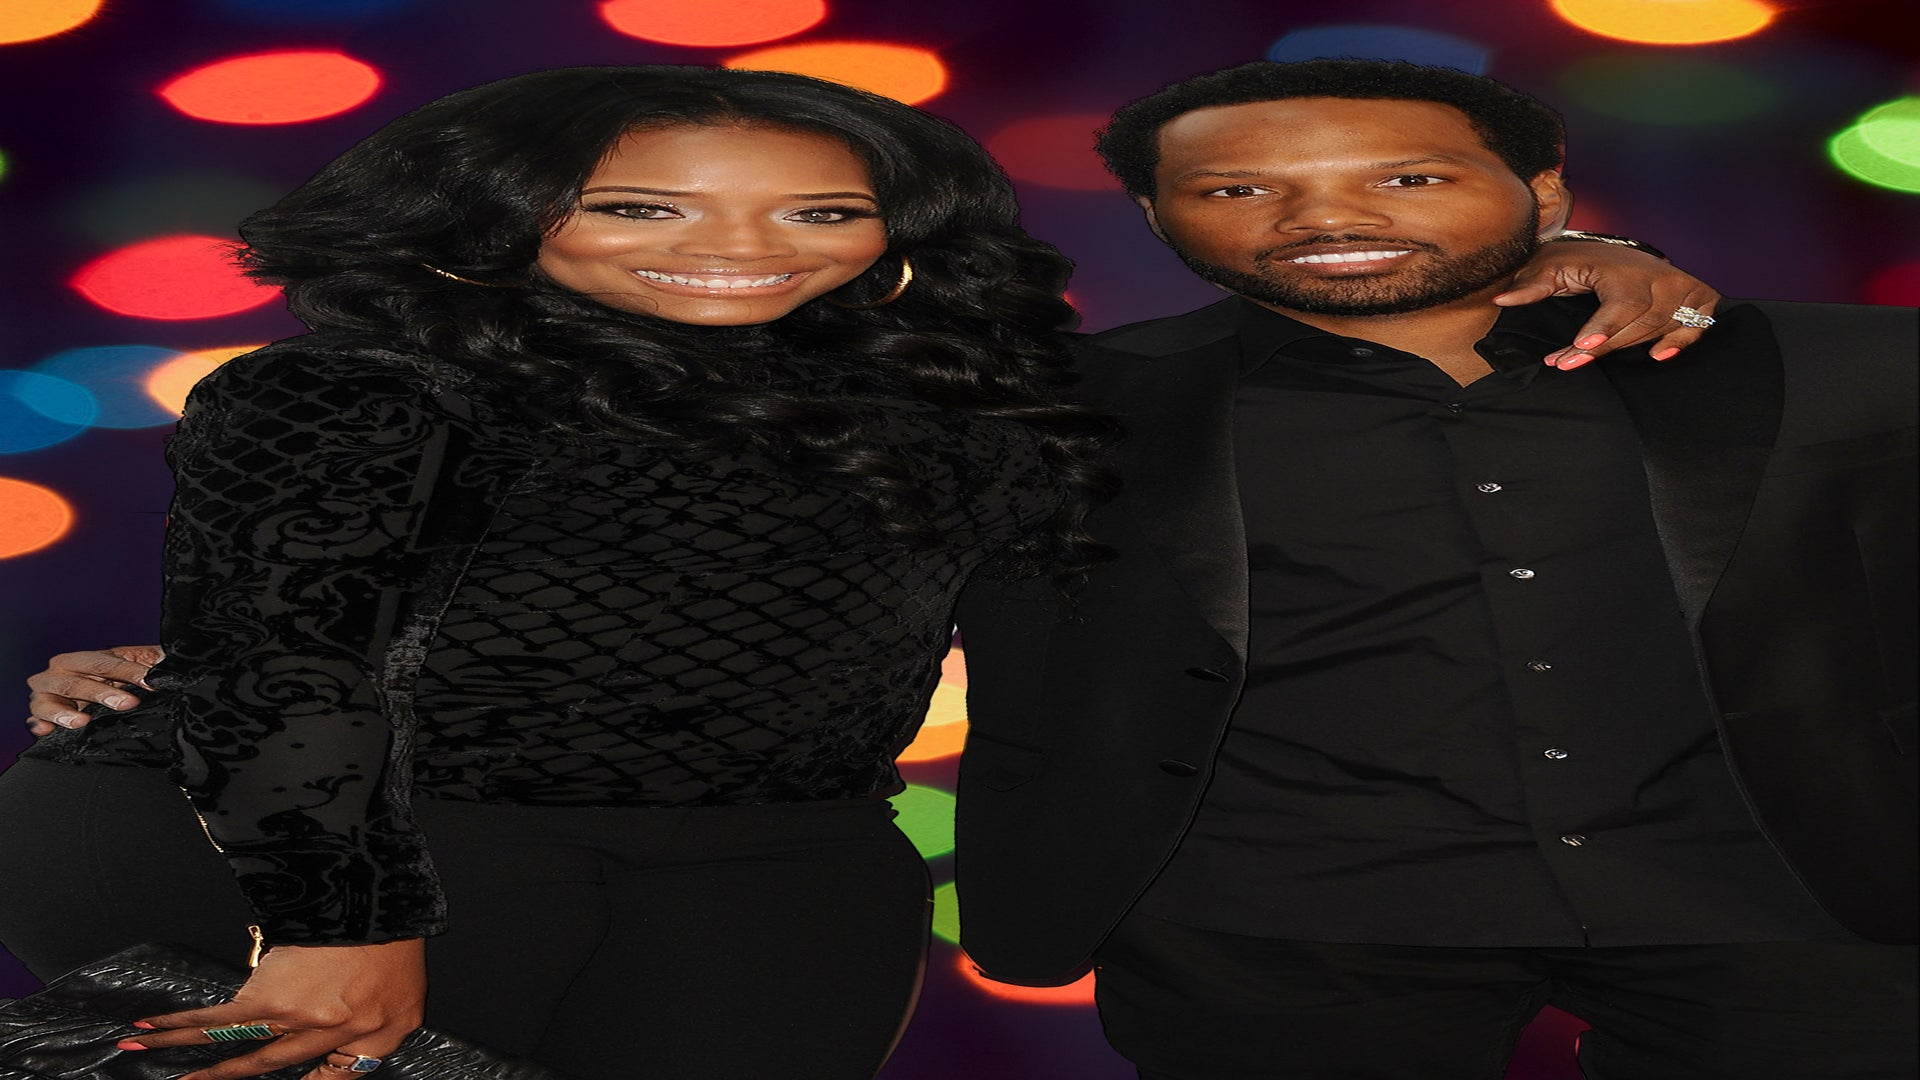 Yandy Smith-Harris Explains Why She Isn't Legally 'Married' To Husband Mendeecees On 'Love & Hip-Hop'